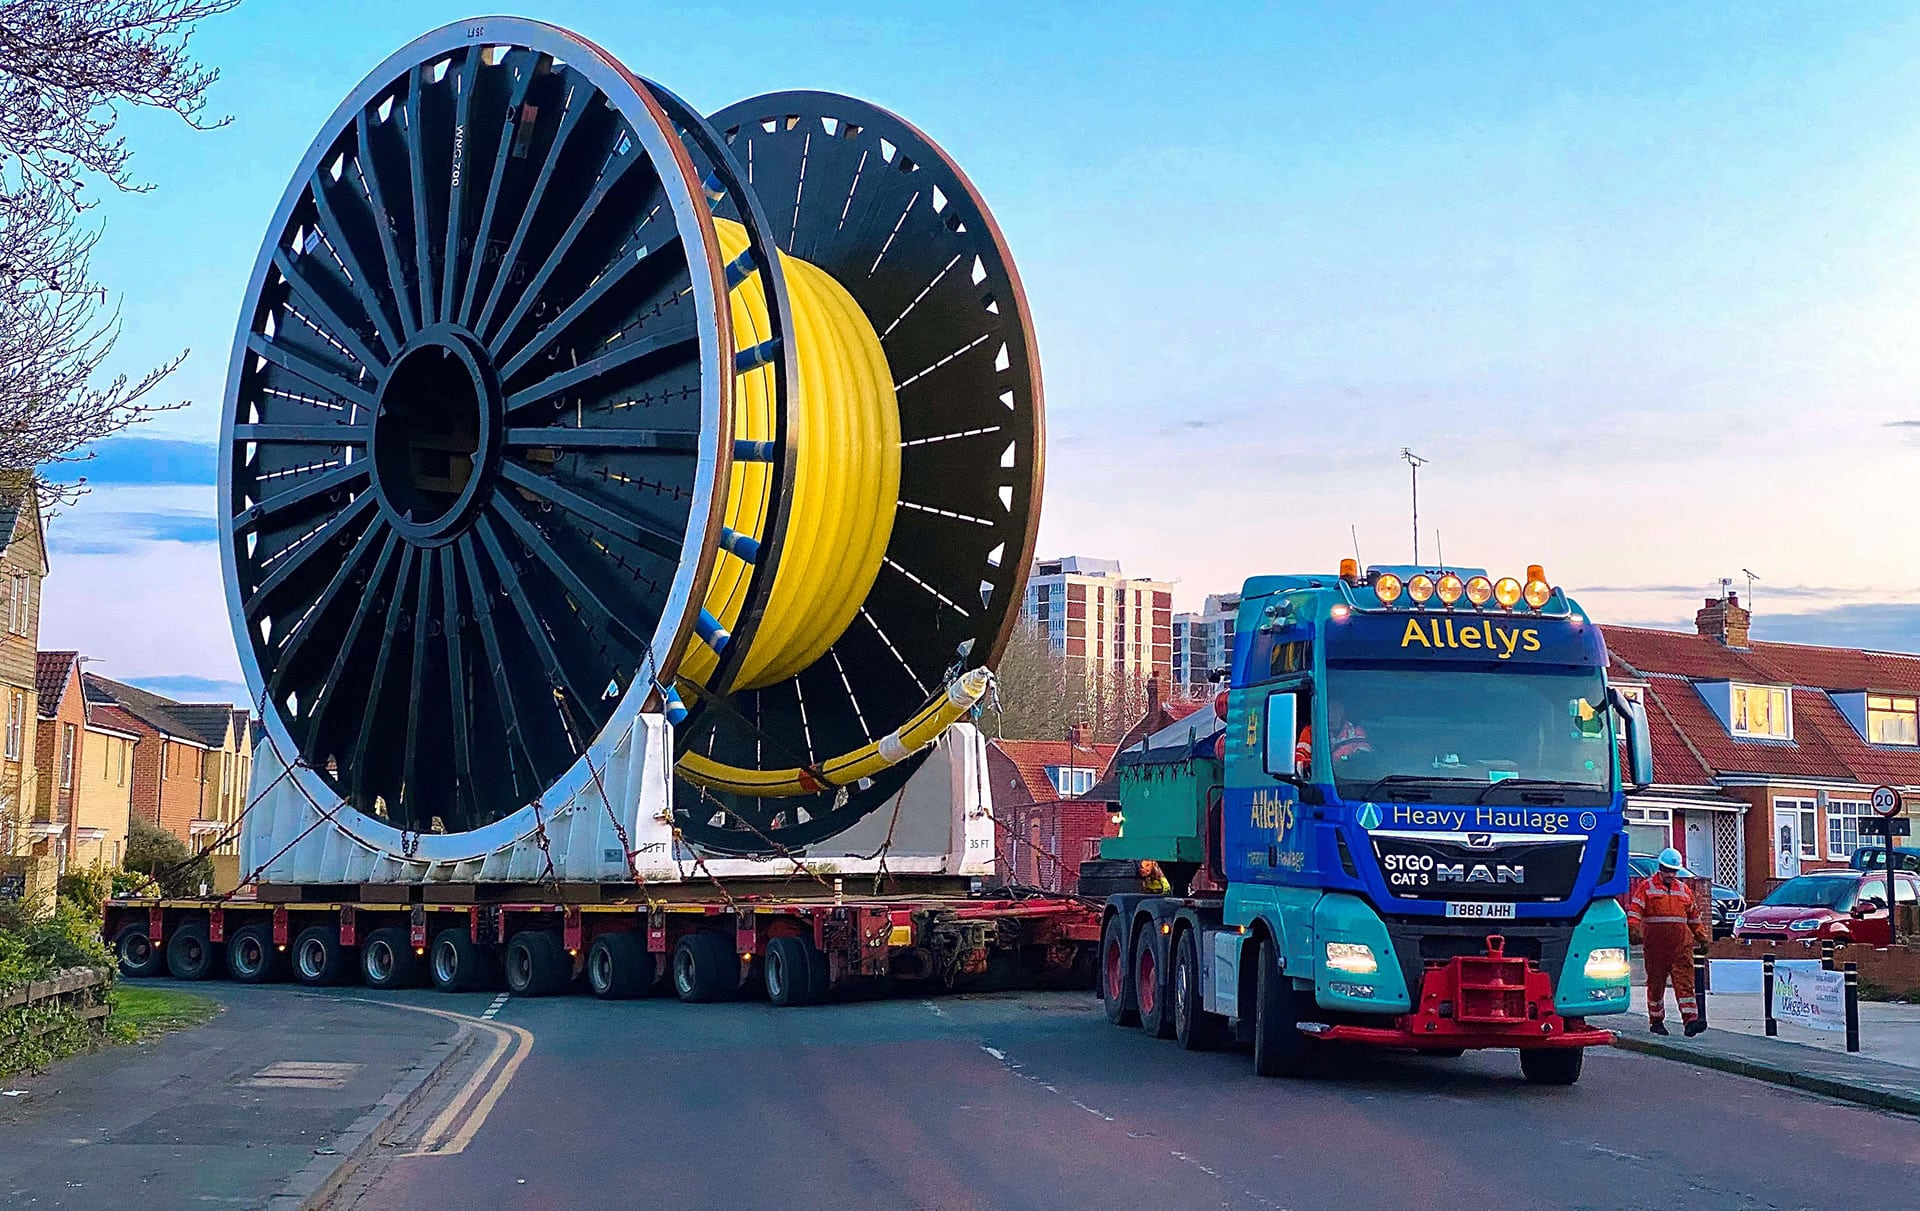 Heavy haulage for oil and gas